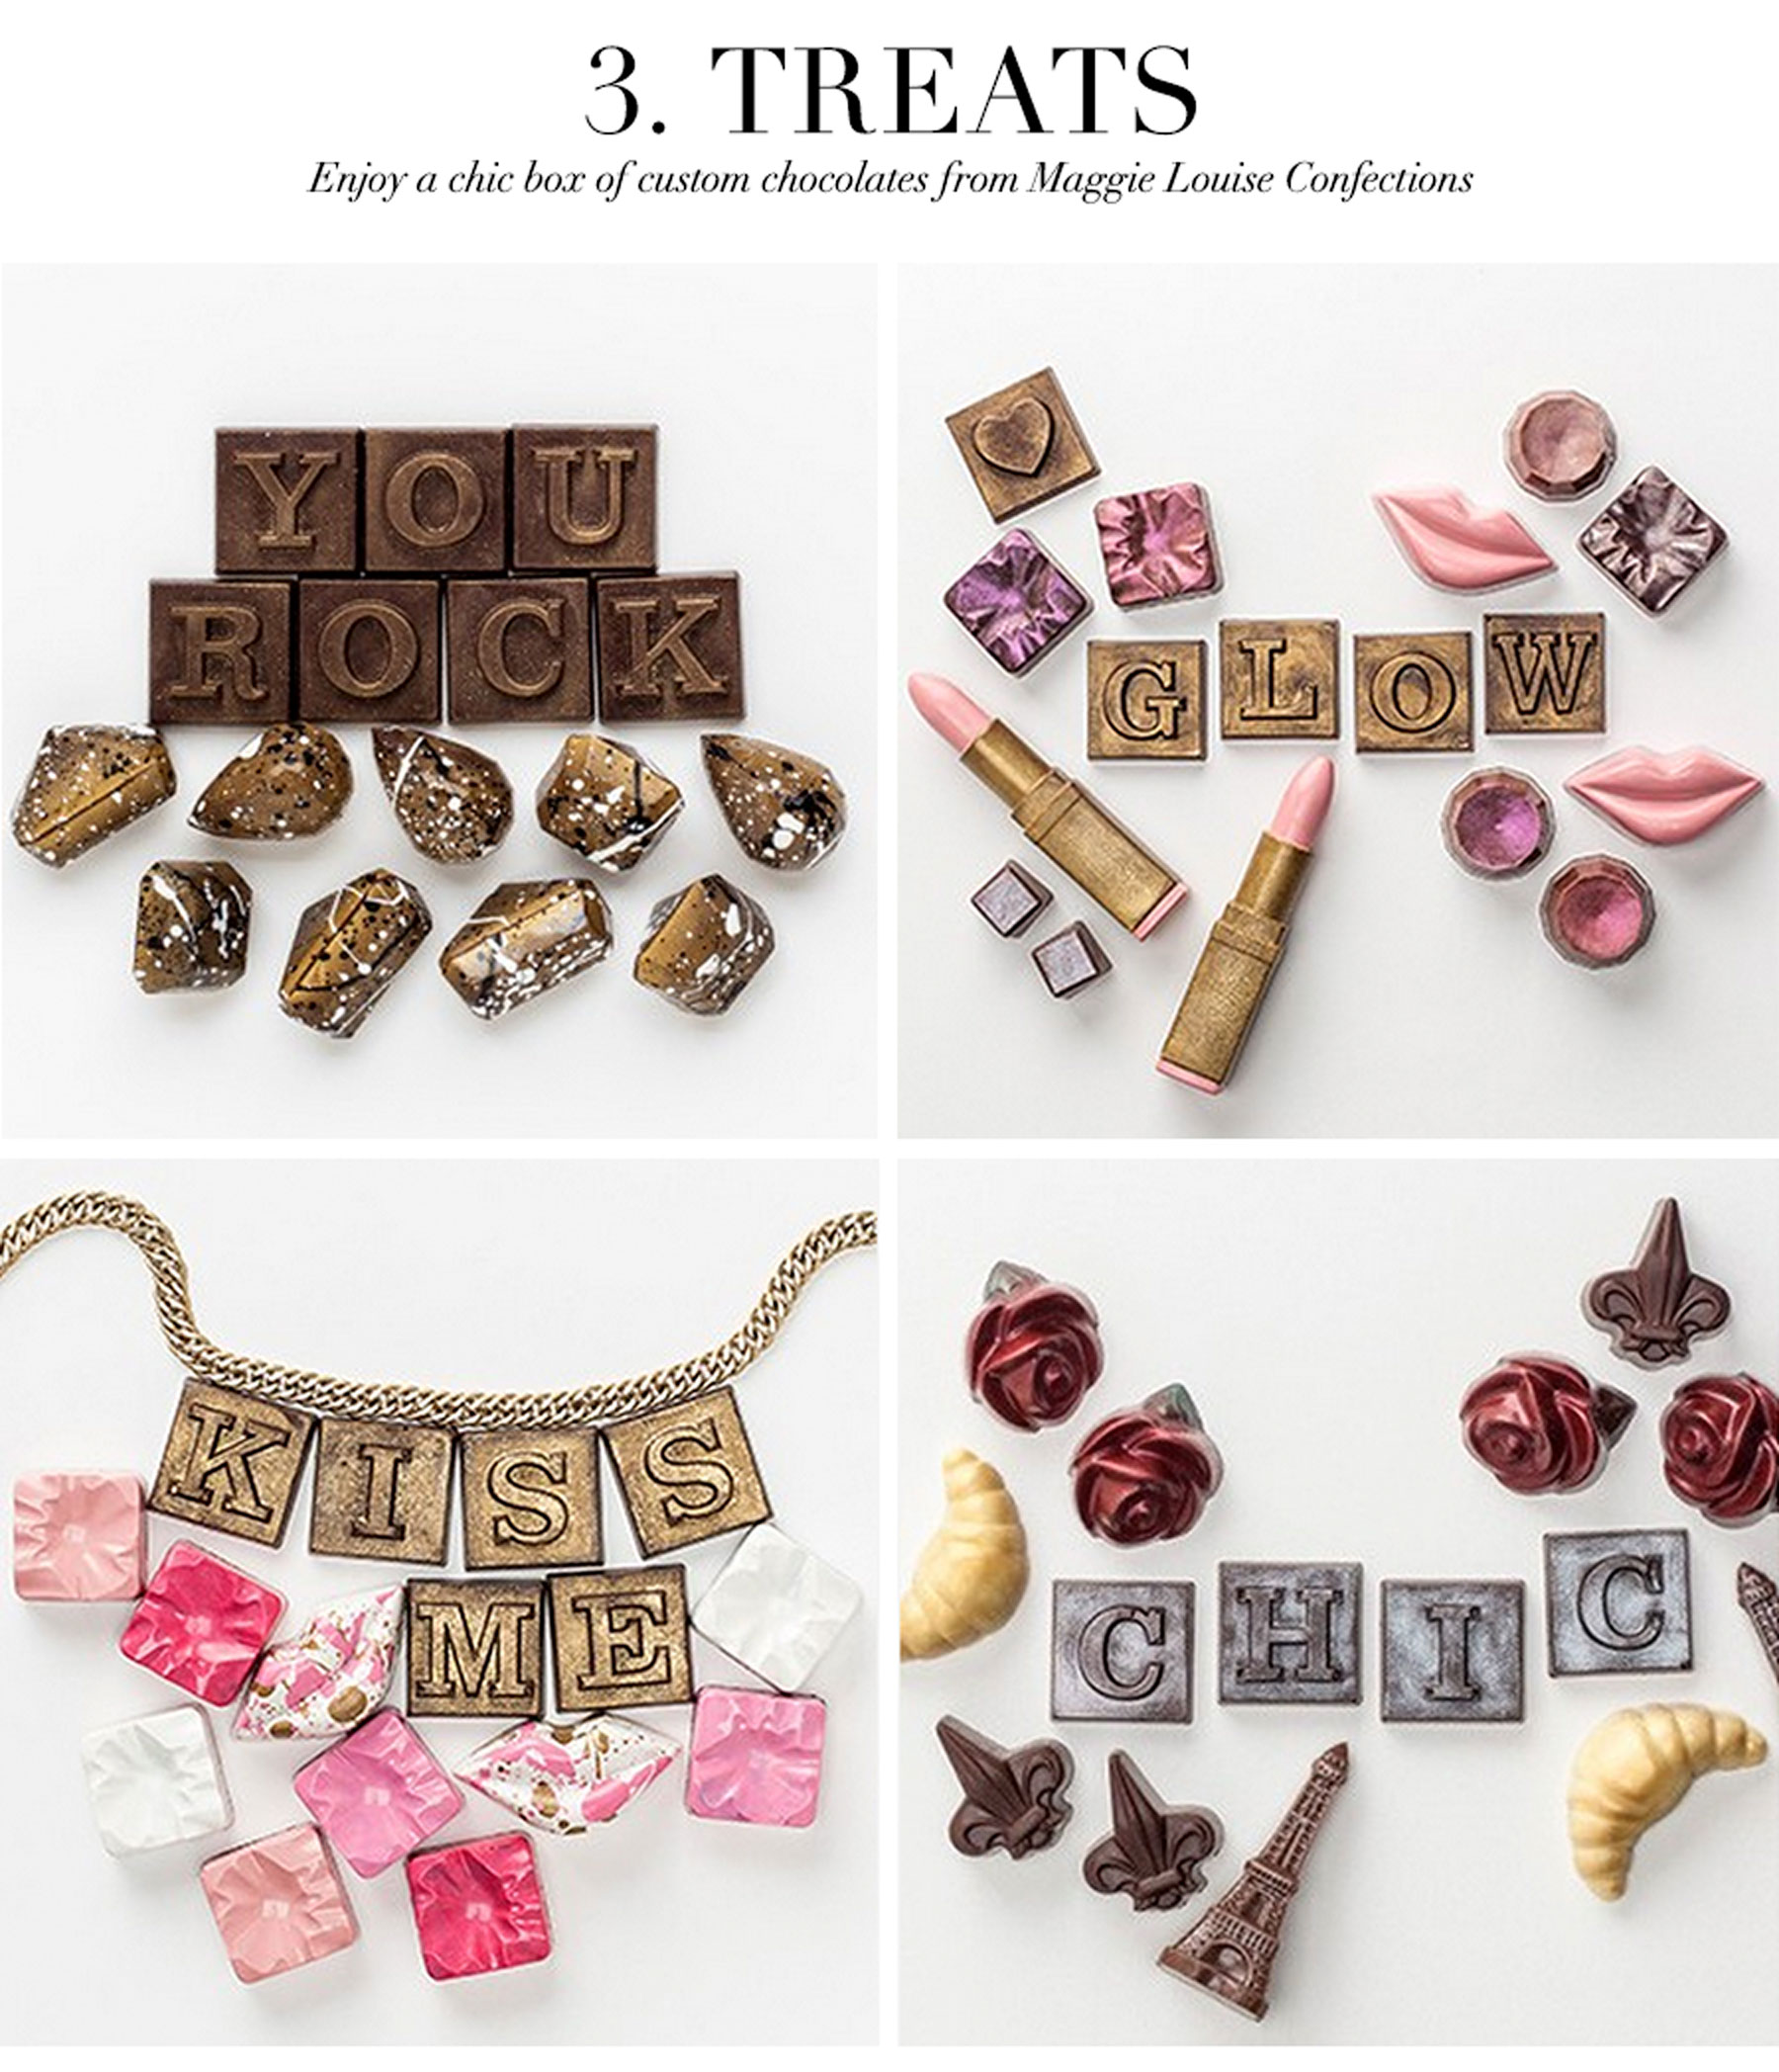 Ceci Johnson's Treat-Yourself Picks - Treats - Treat yourself to a chic box of custom chocolates with Maggie Louise Confections